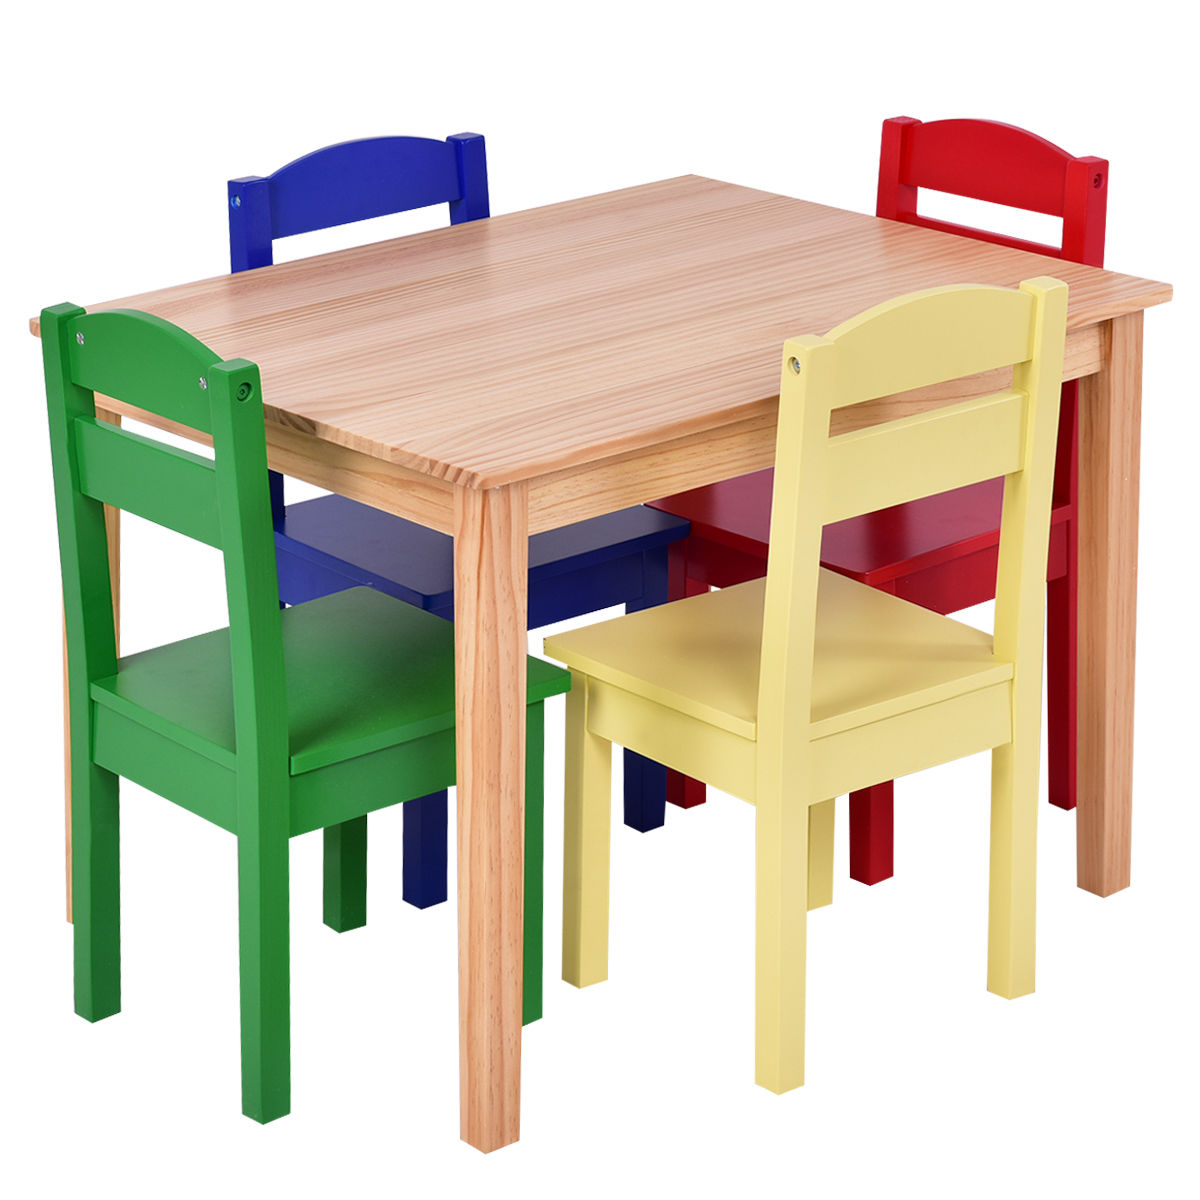 Kids Wood Table And Chairs Kids 5 Piece Table Chair Set Pine Wood Multicolor Children Play Room Furniture